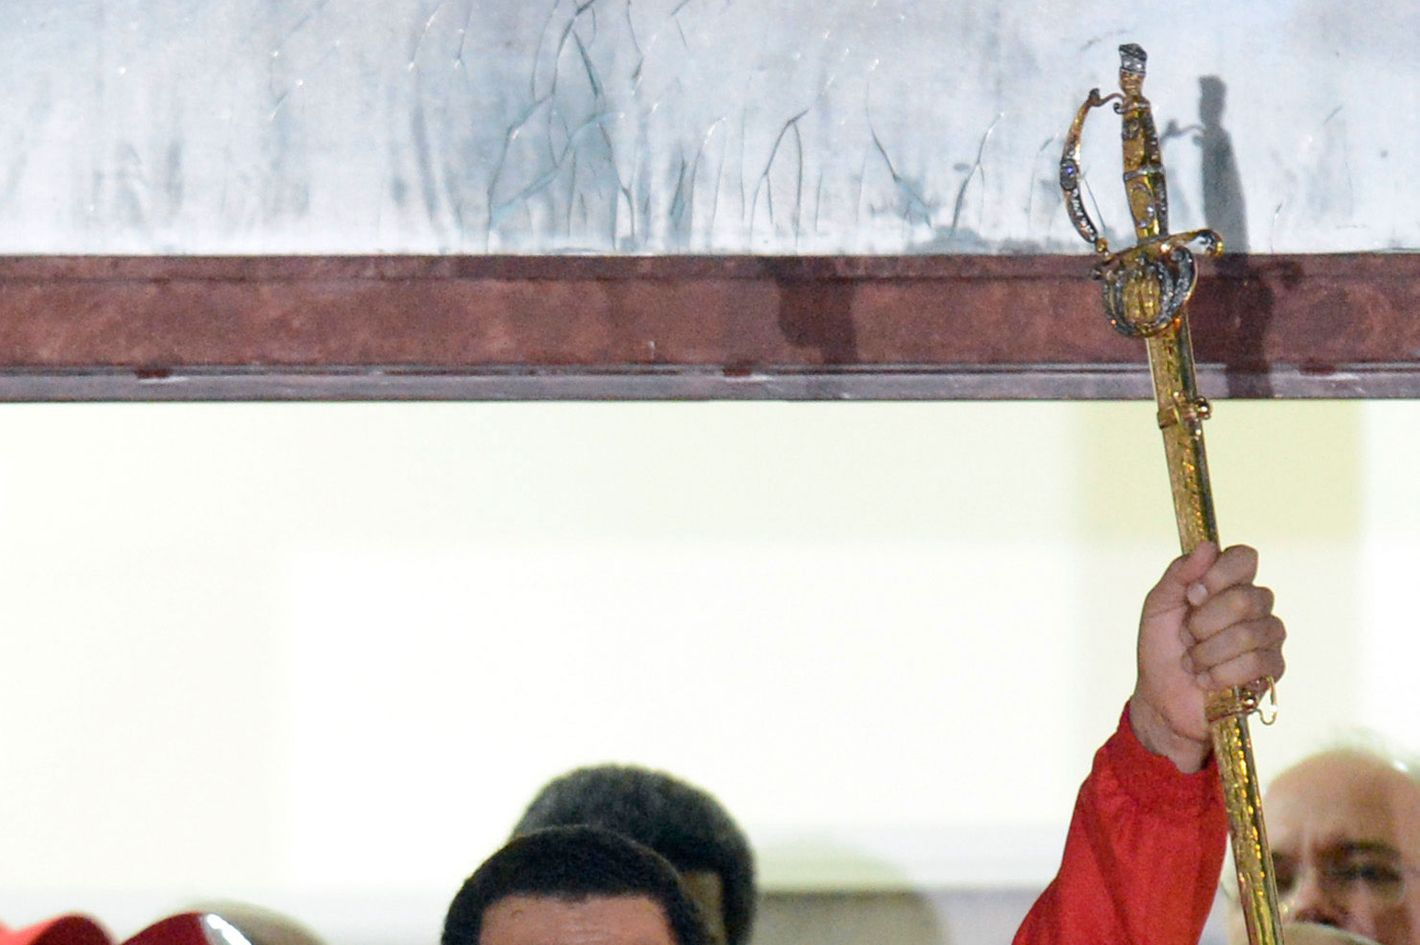 Venezuelan President Hugo Chavez (C) holds the sword of South American liberator Simon Bolivar while speaking to supporters after receiving news of his reelection in Caracas on October 7, 2012. According to the National Electoral Council, Chavez was reelected with 54.42% of the votes, beating opposition candidate Henrique Capriles, who obtained 44.47%. AFP PHOTO/JUAN BARRETO